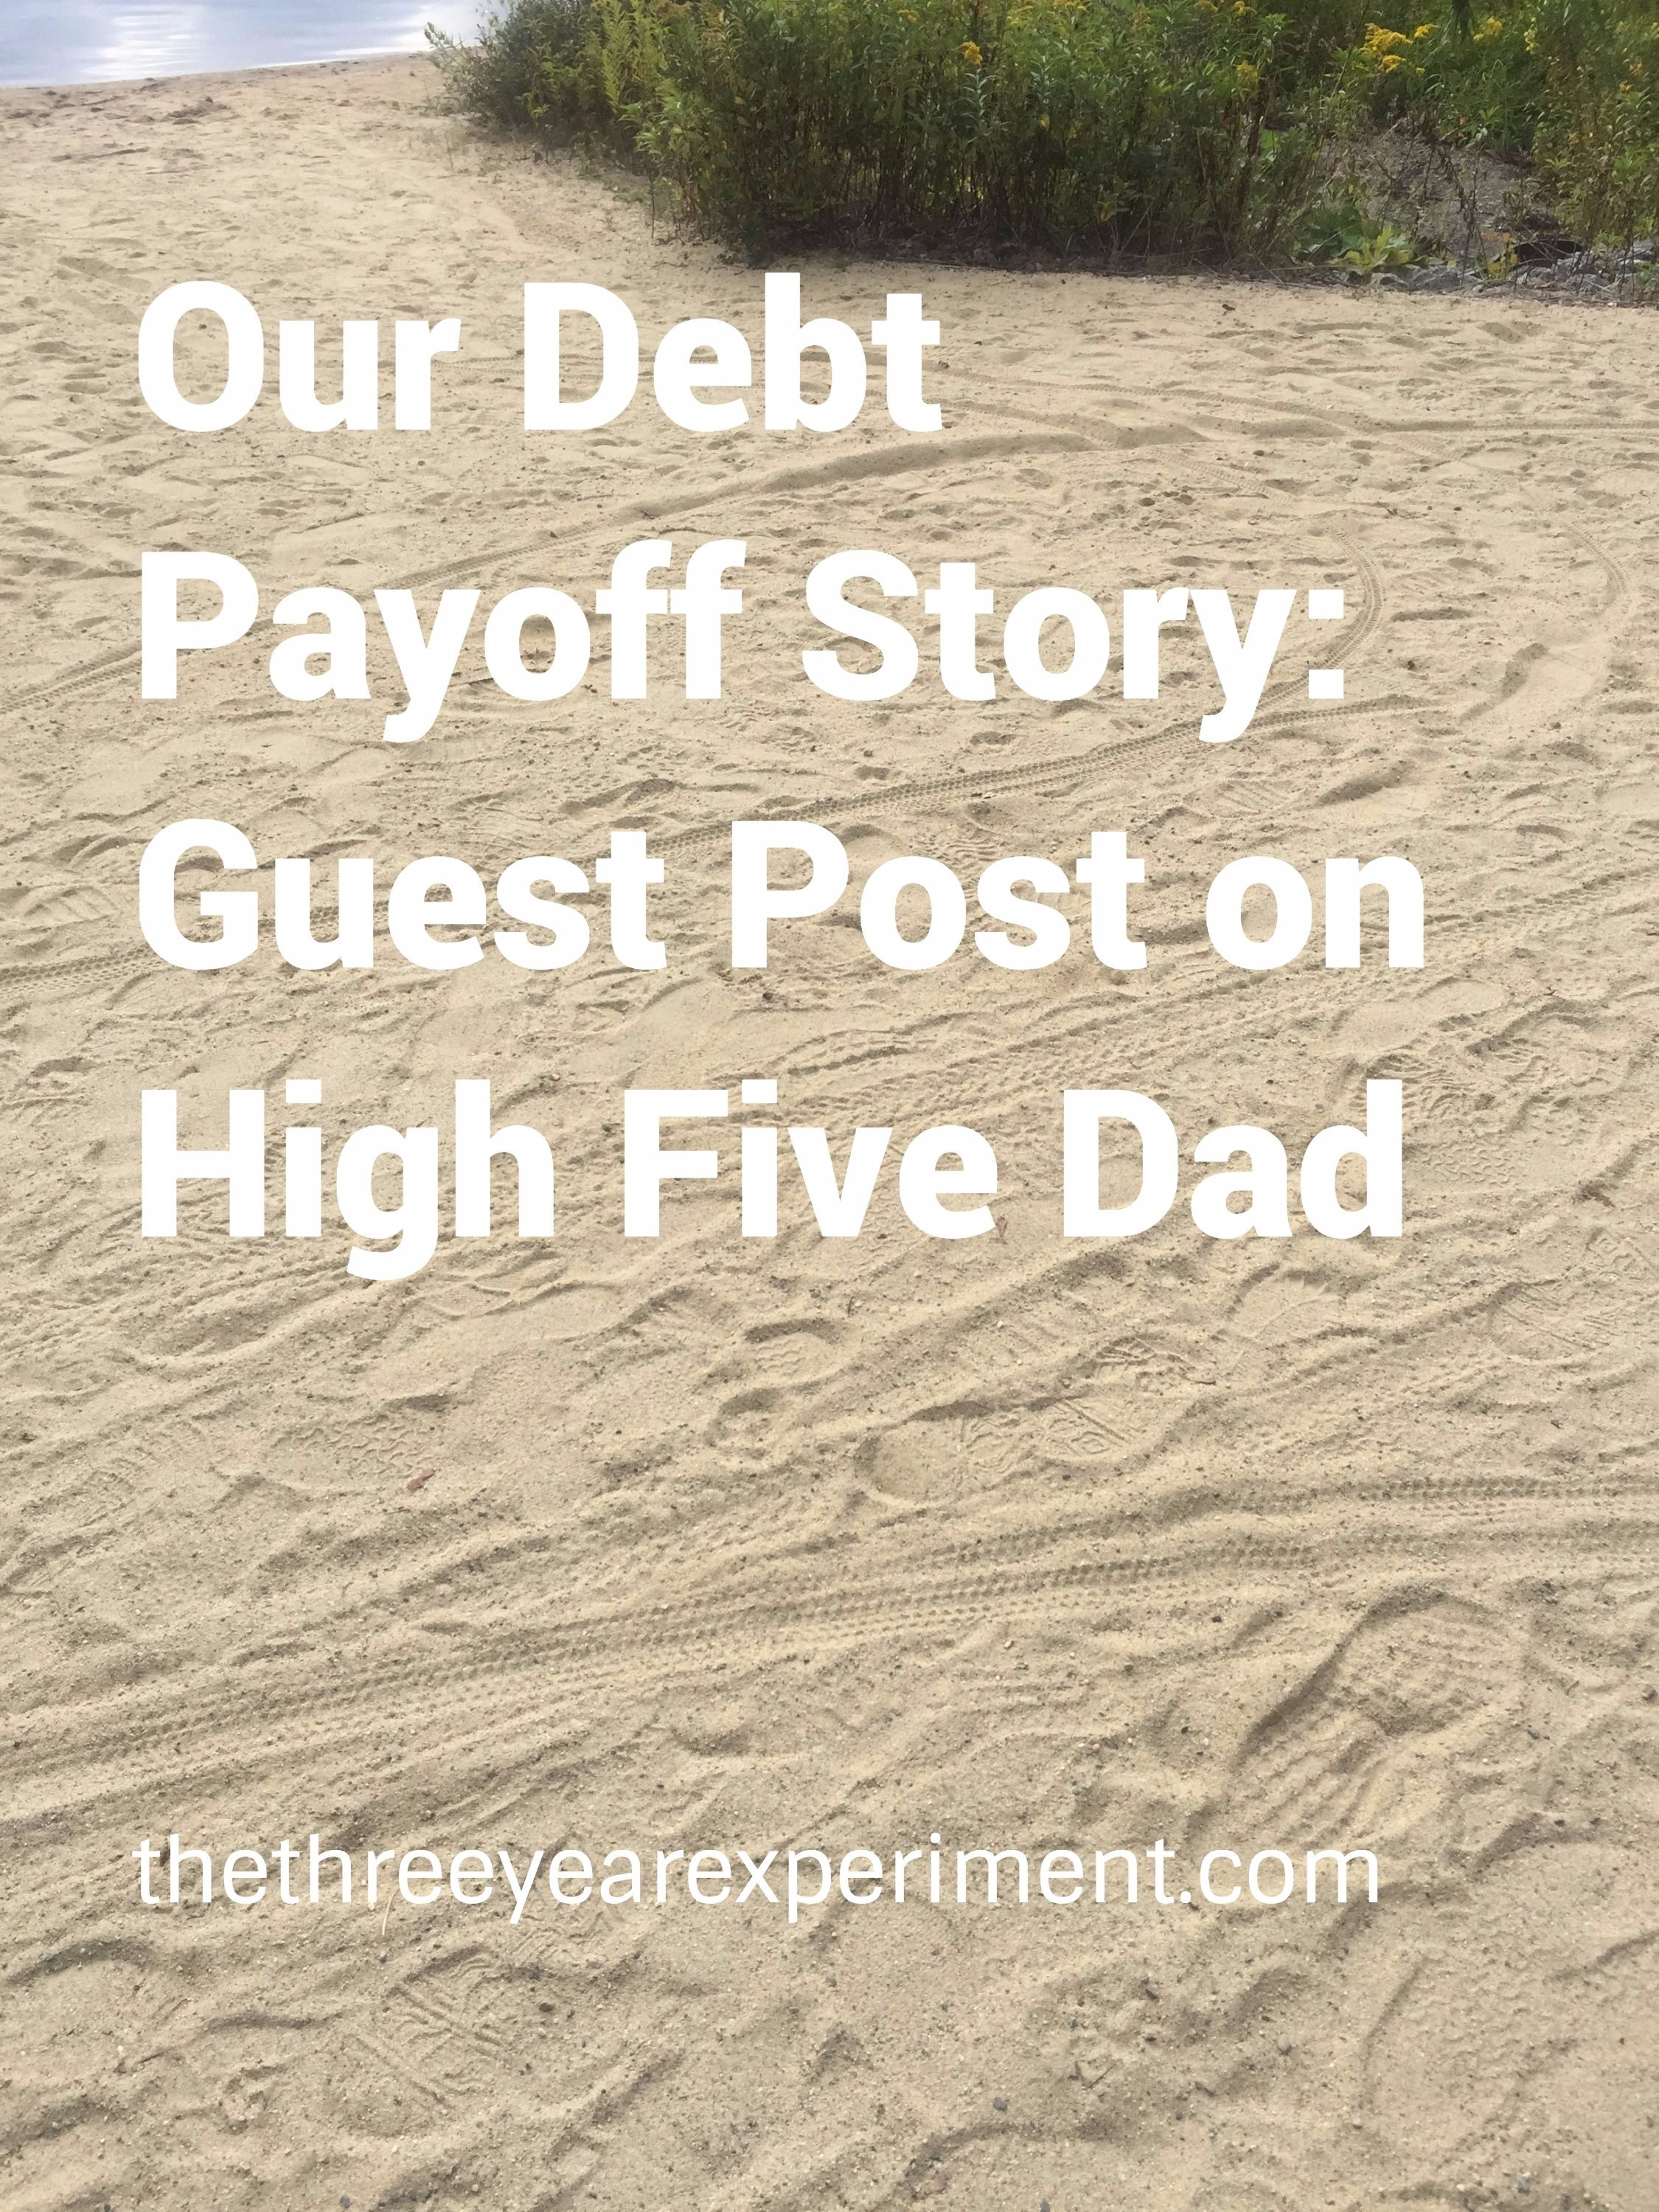 Our Debt Payoff Story--www.thethreeyearexperiment.com